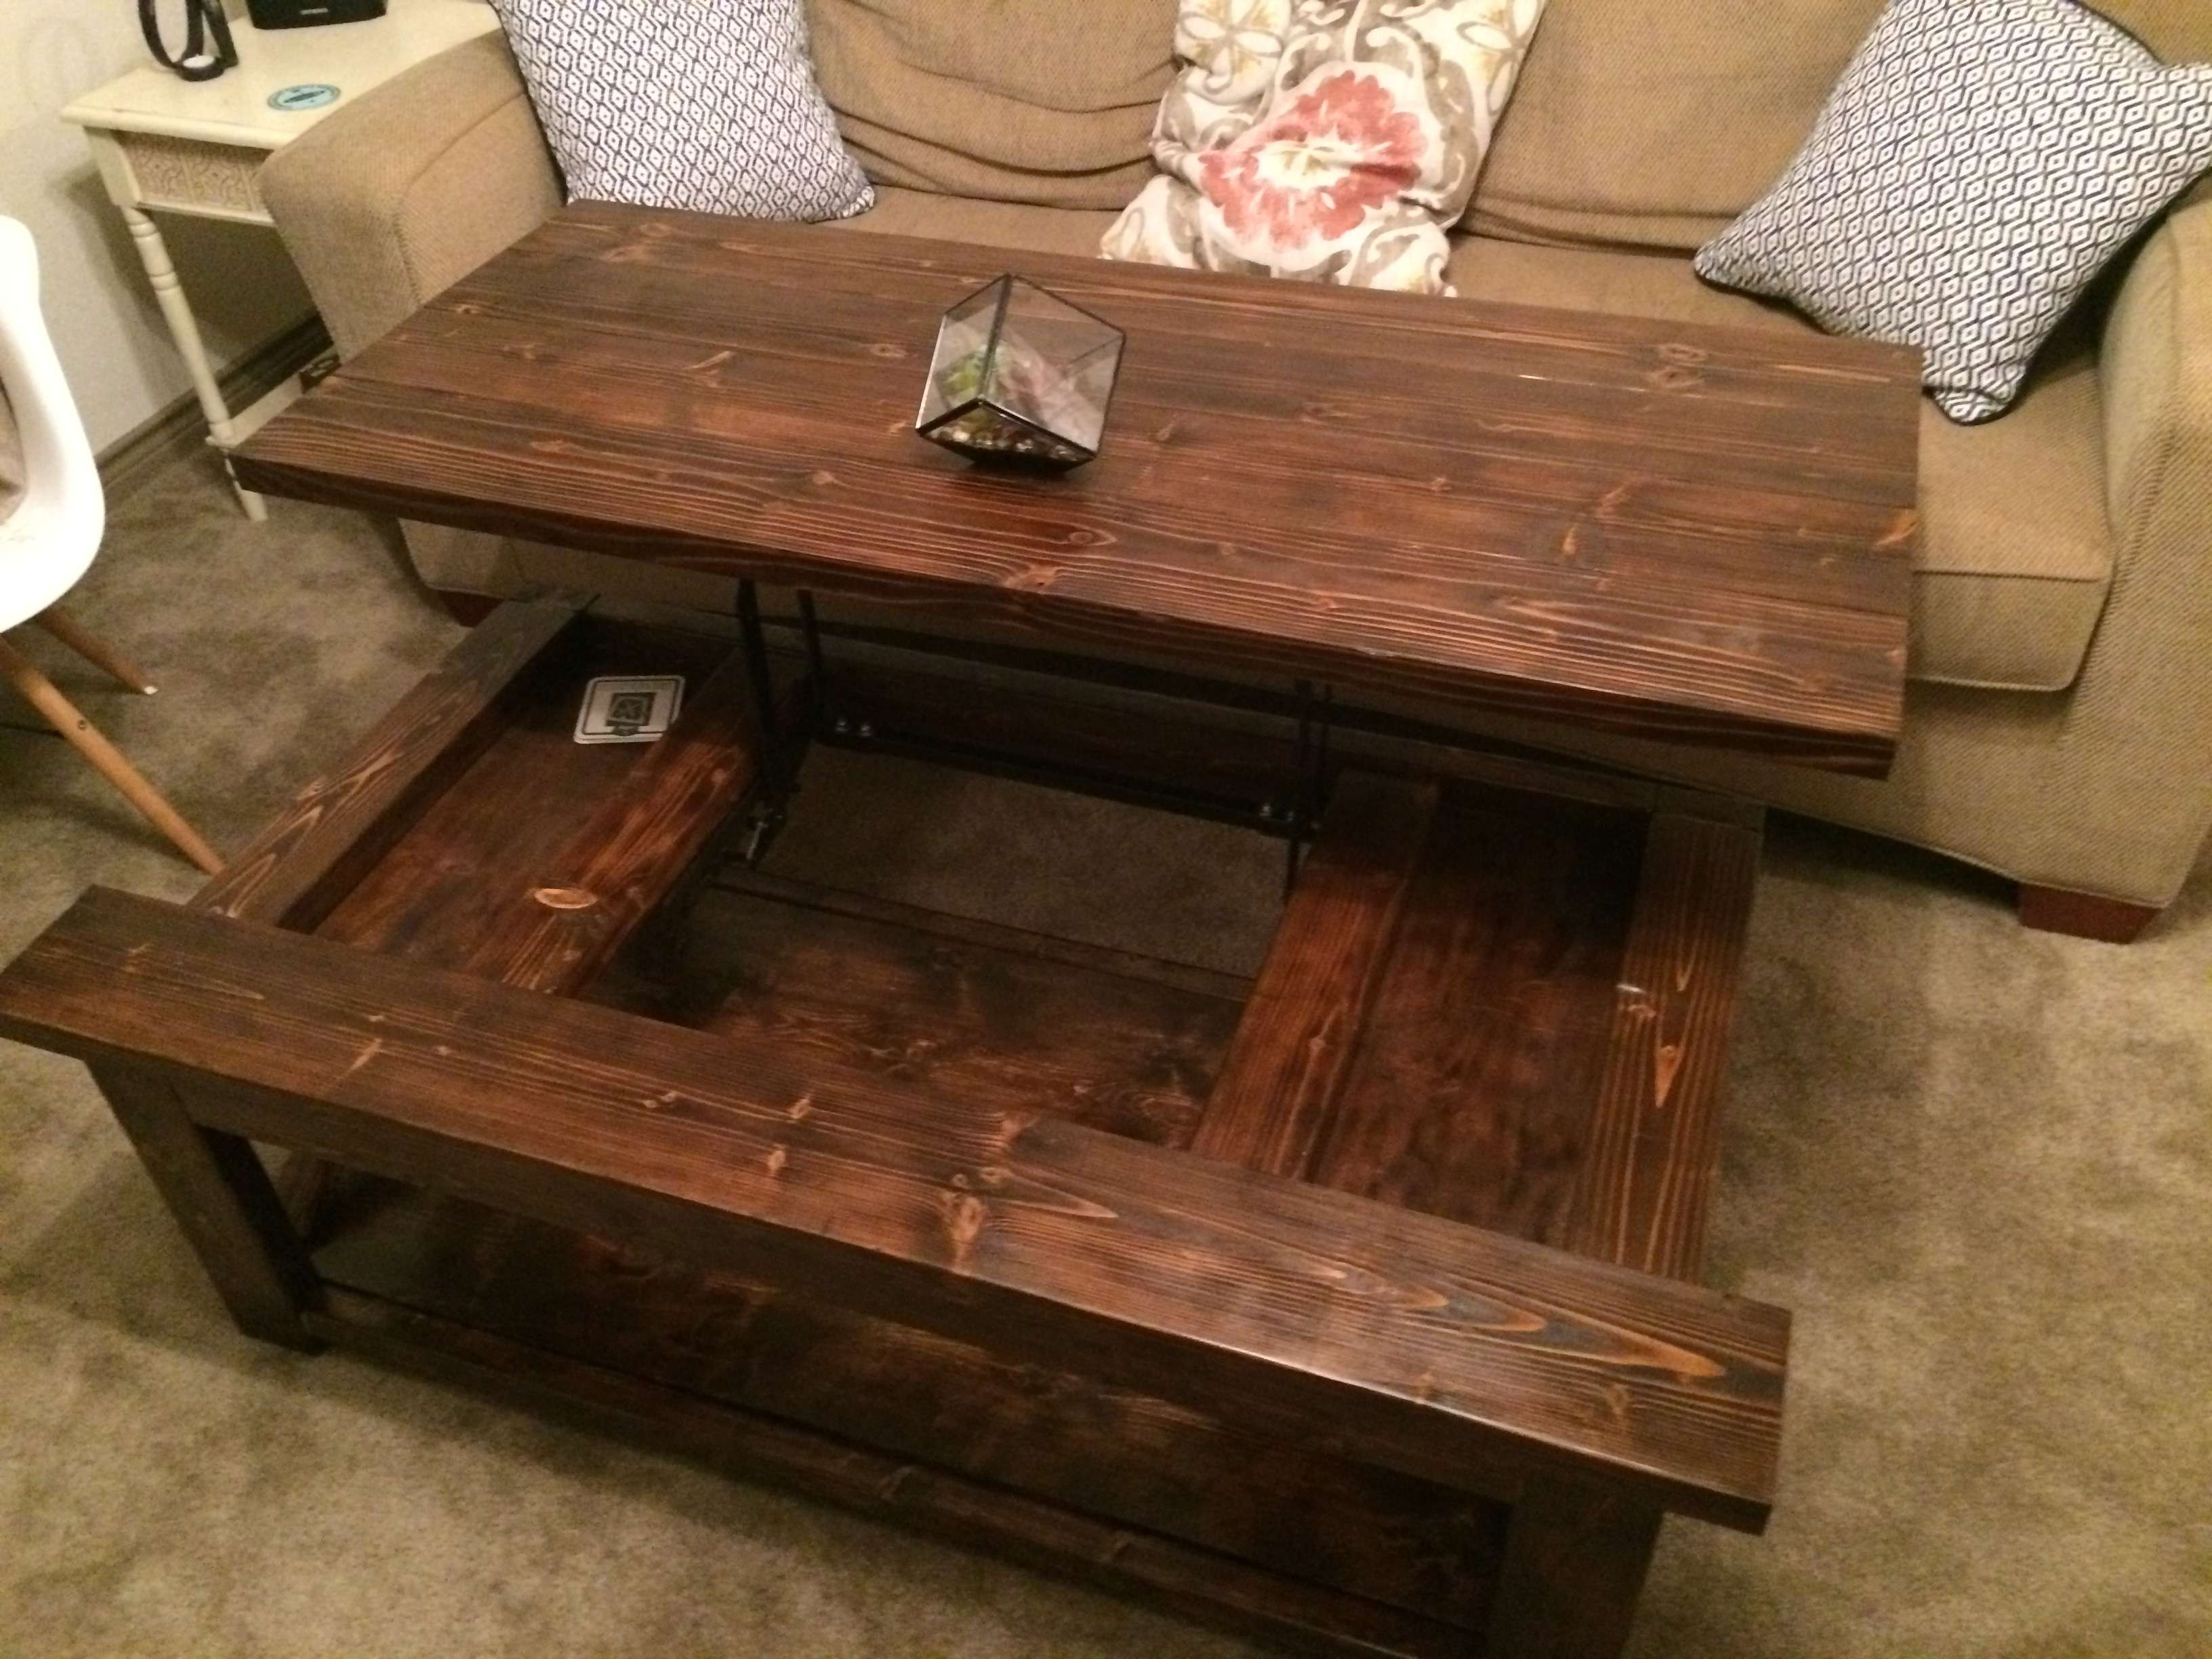 Diy Lift Top Coffee Table – Rustic X Style – Diy Projects (View 6 of 20)